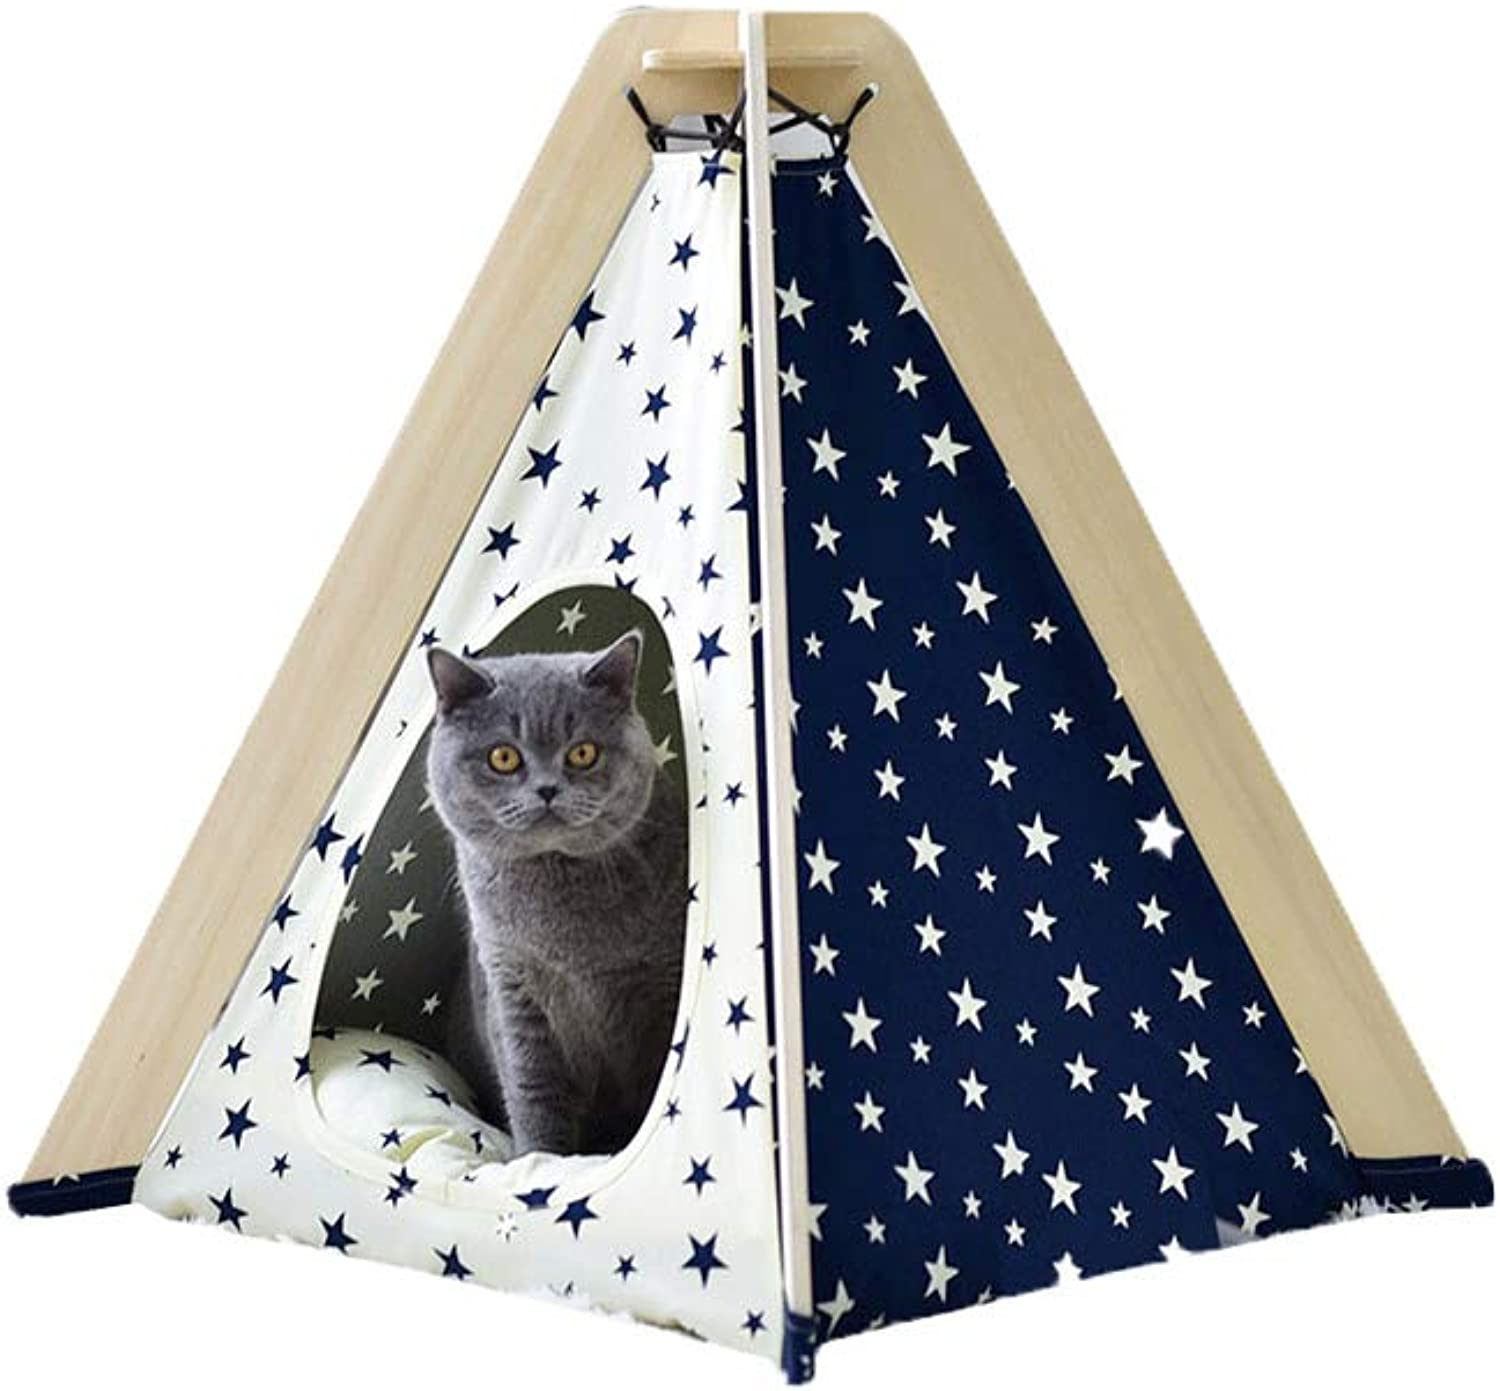 Pet Travel Tent, SemiEnclosed Cat Litter FourPointed Spire Washable Cotton Canvas Firm Pine Bracket It Can Be Used Outdoors and Home,Stars